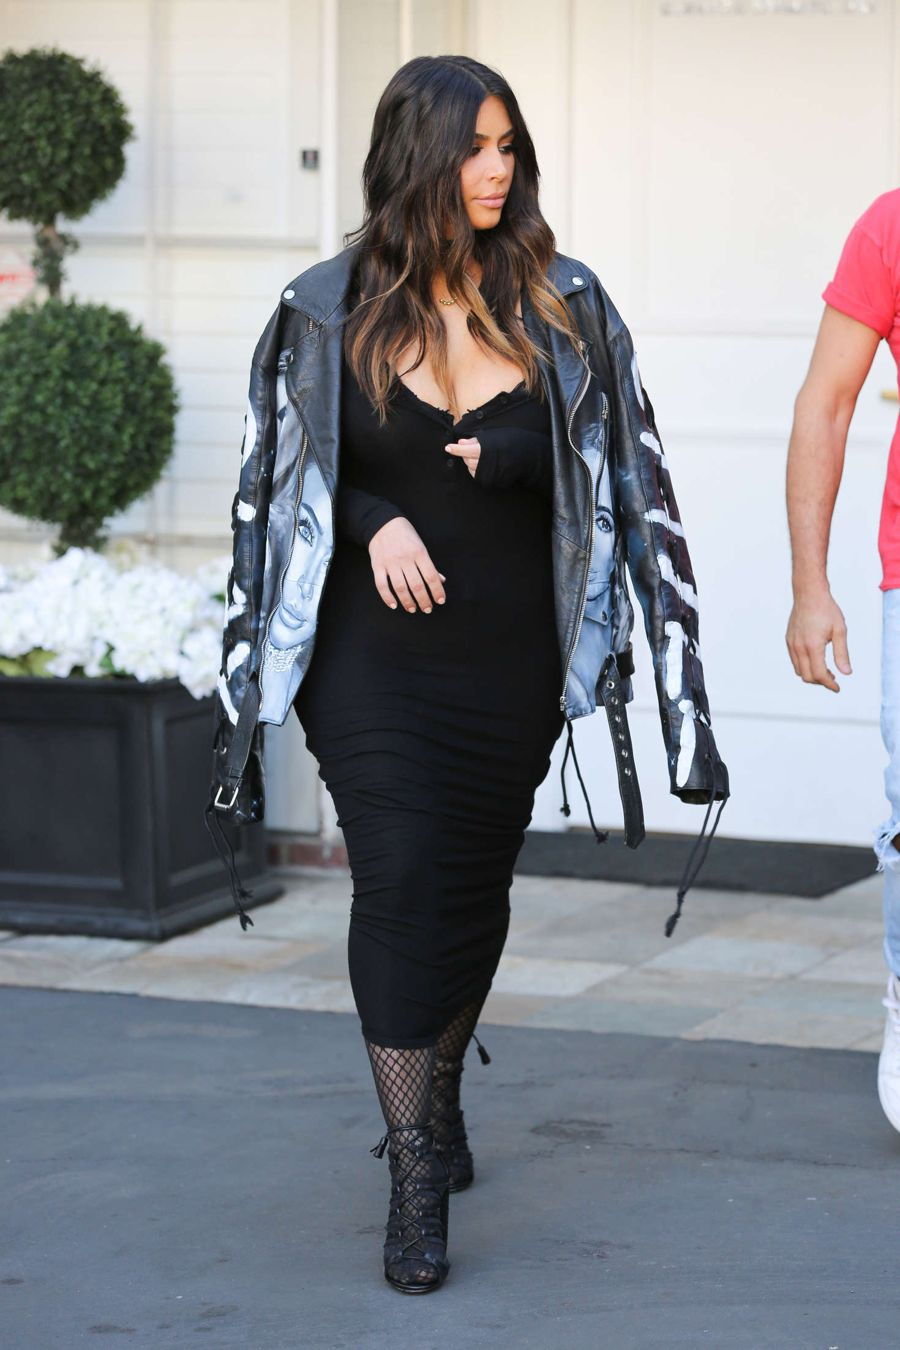 Kim Kardashian - Arriving at a photoshoot in Beverly Hills